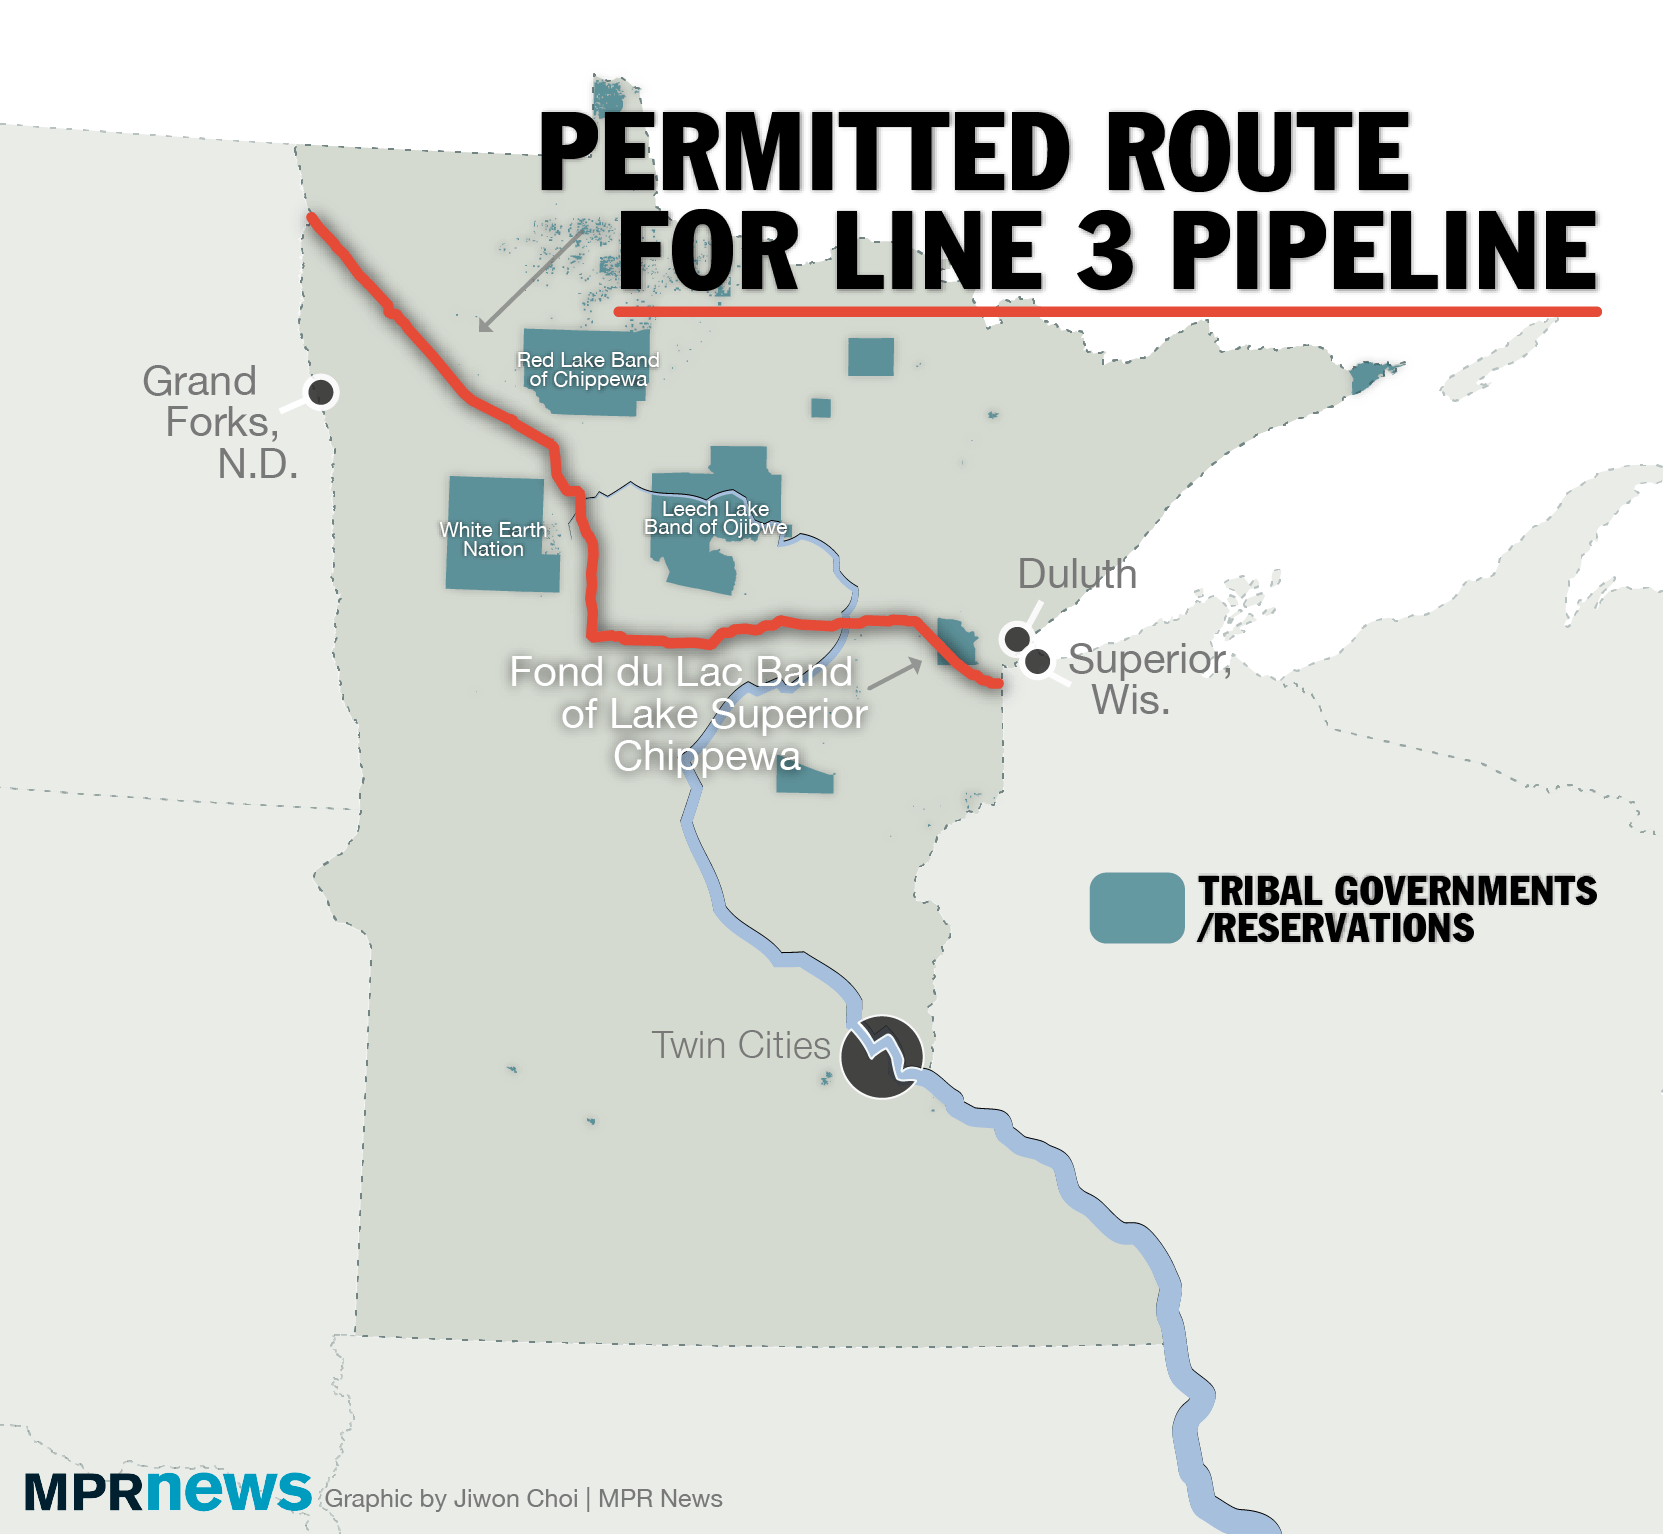 A map of the permitted route for the Line 3 pipeline